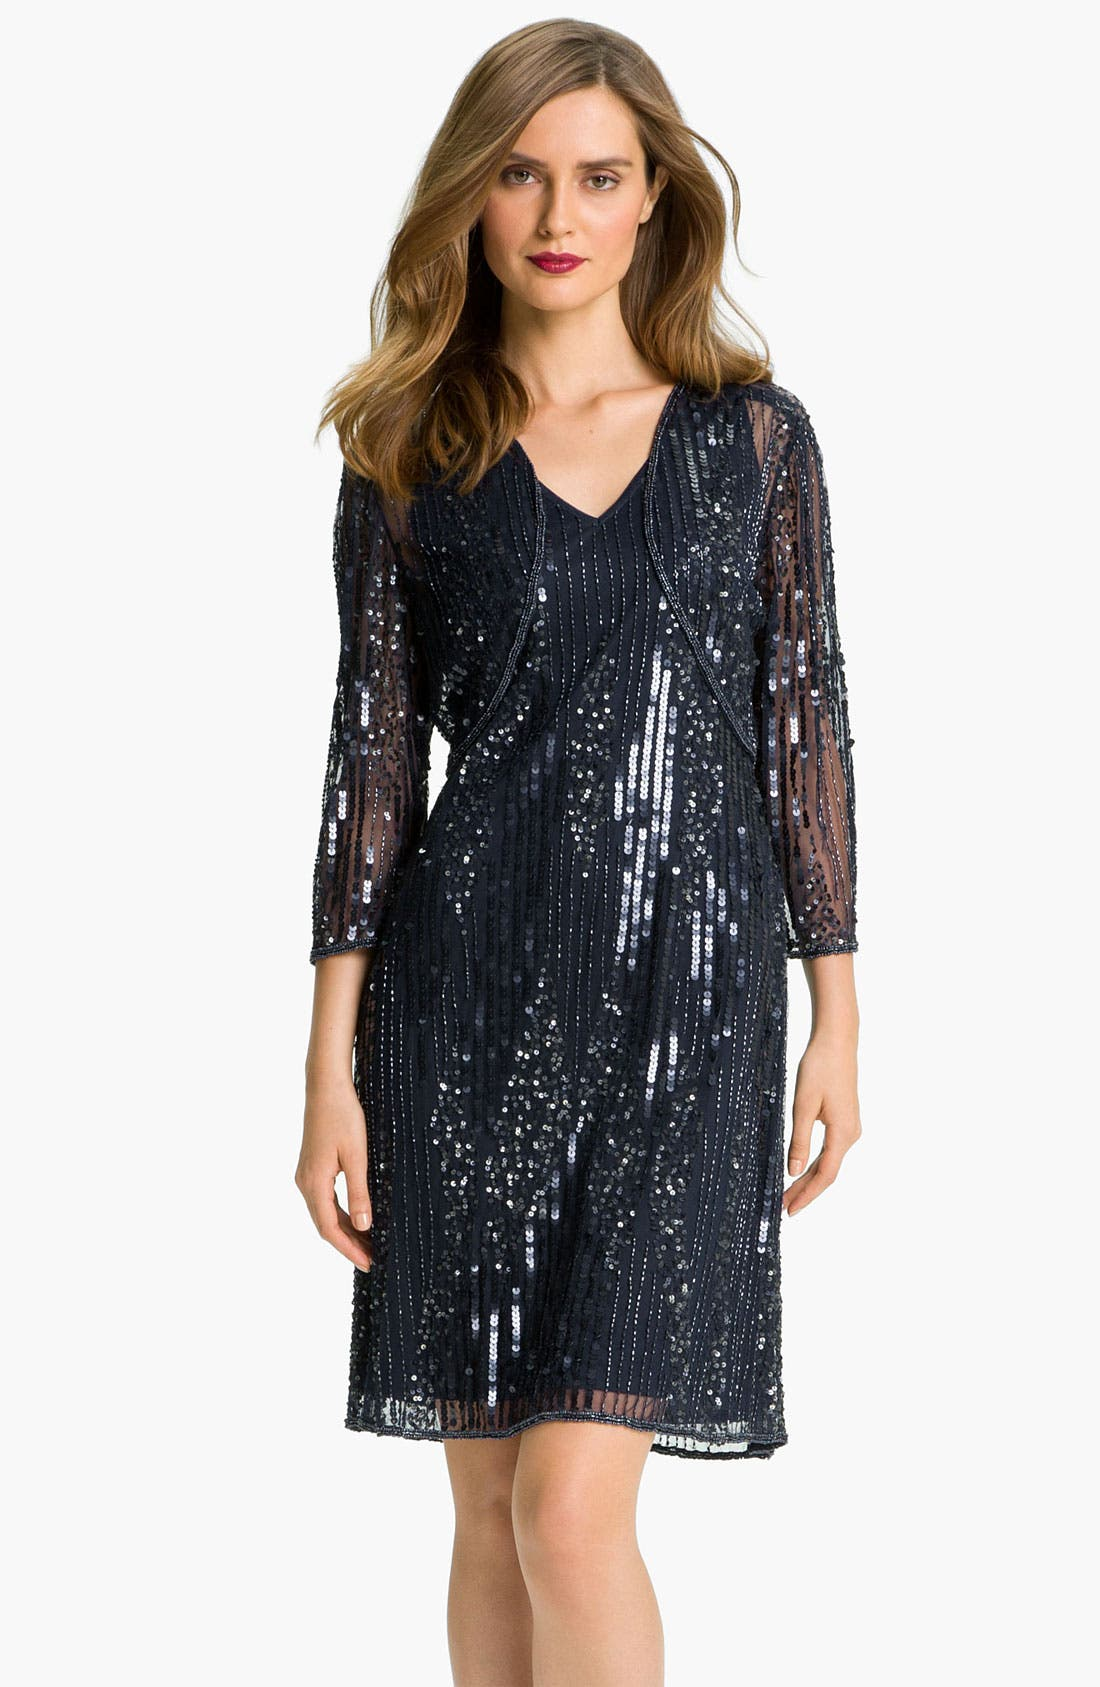 Main Image - Patra Embellished Double V-Neck Mesh Dress & Sheer Bolero